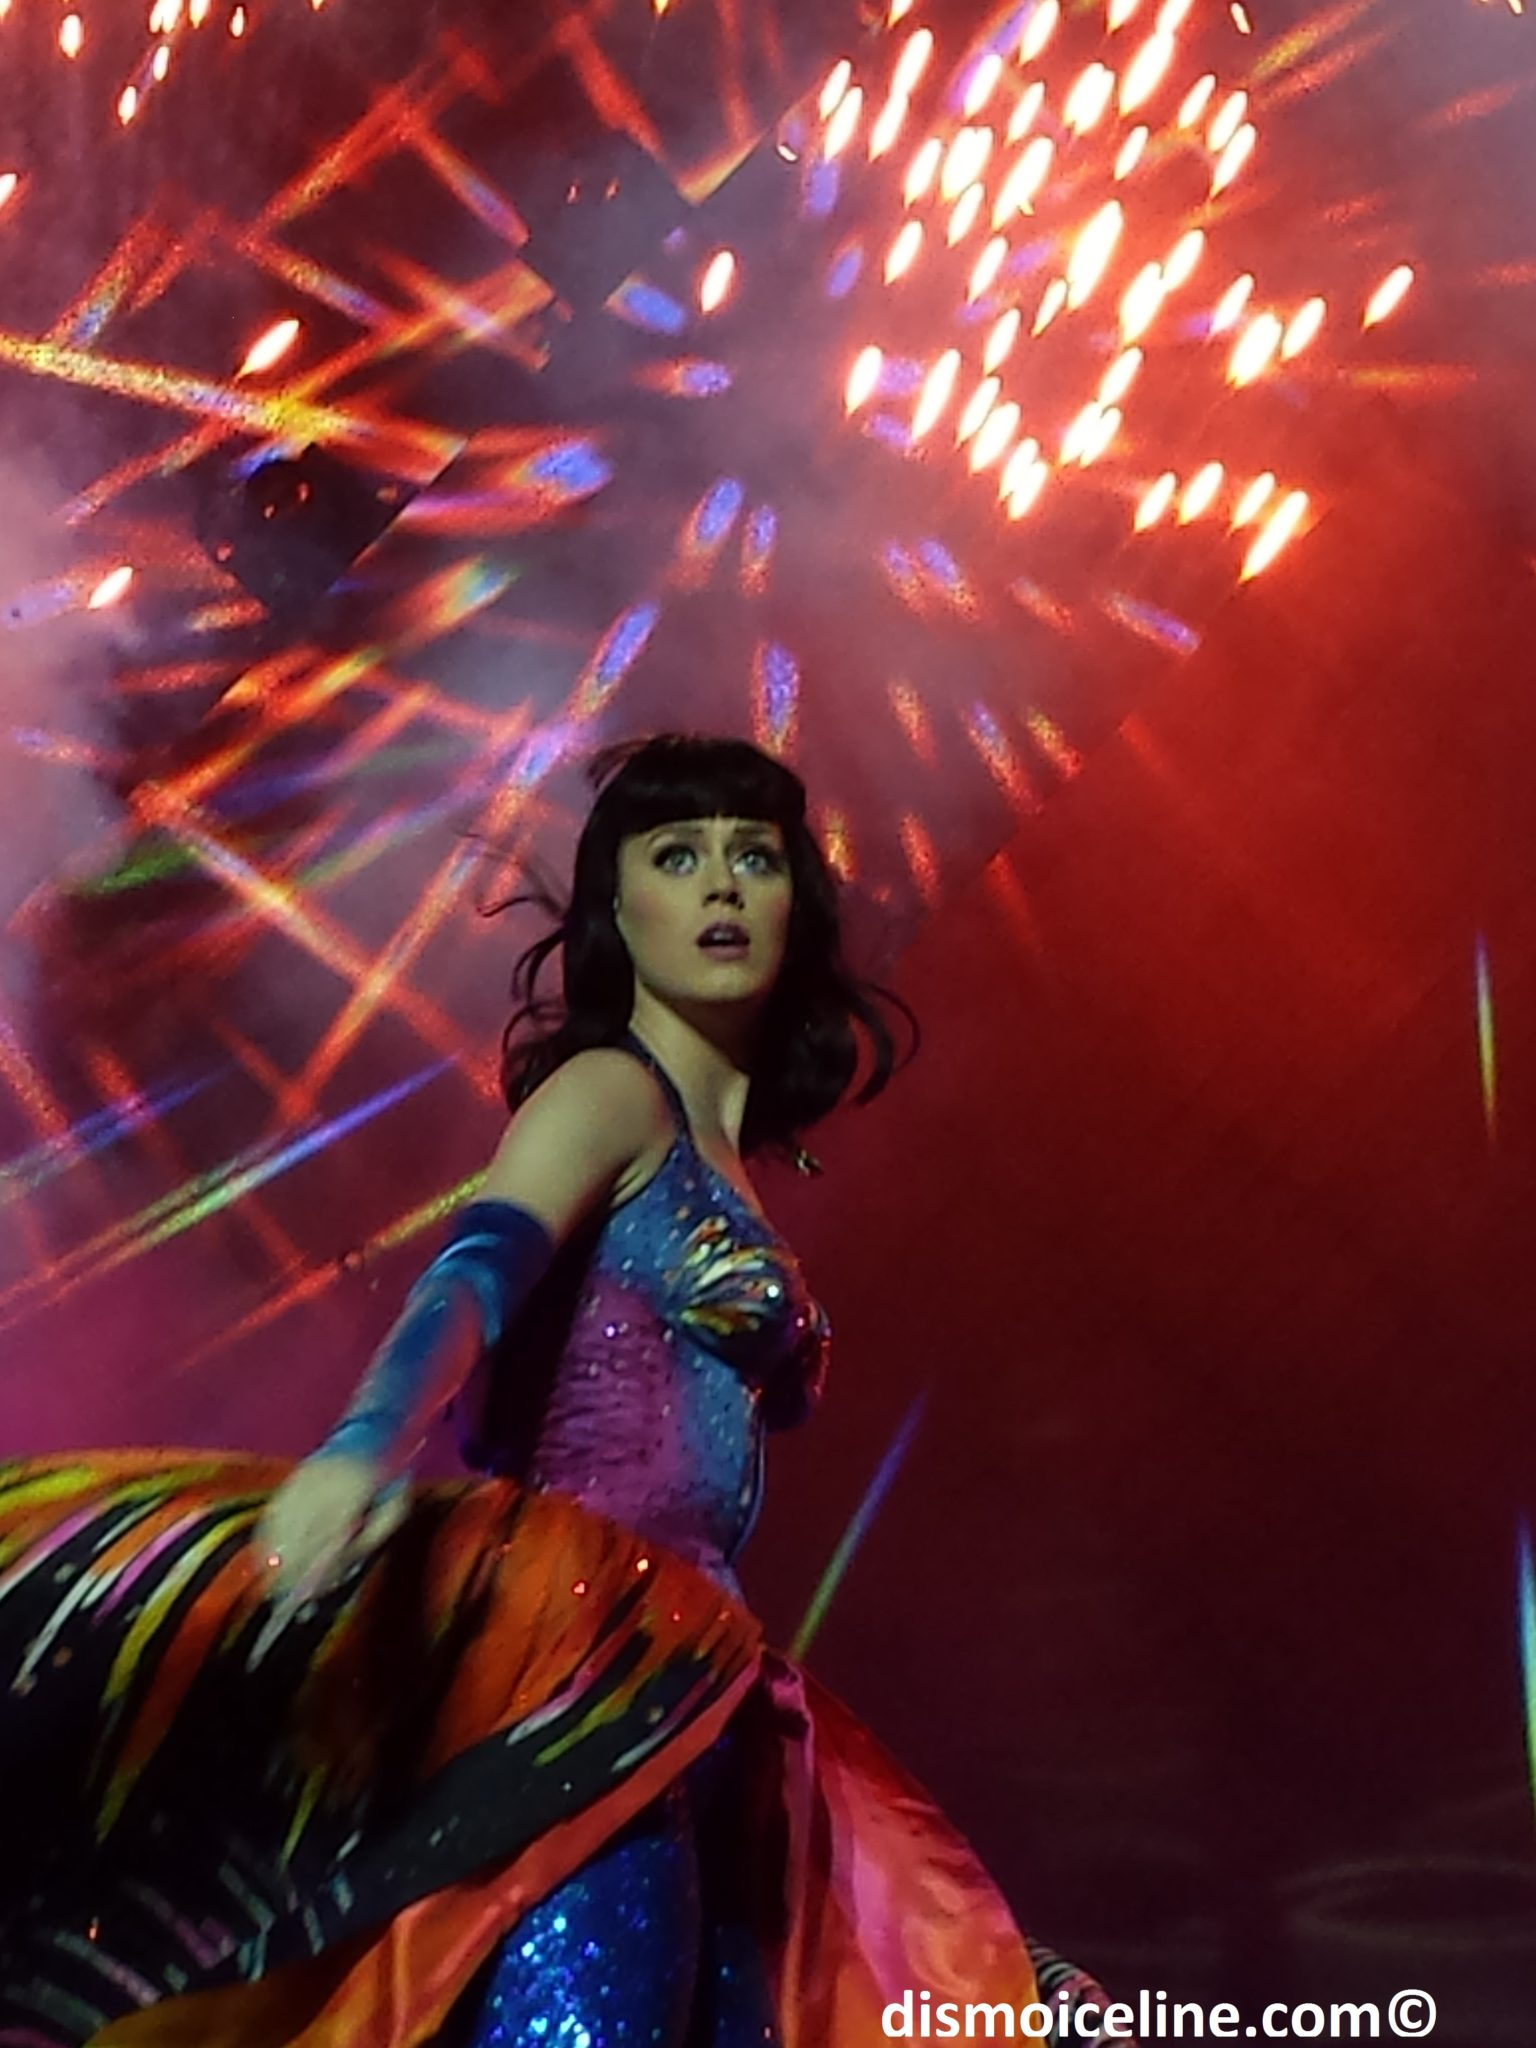 Katy perry hydro glasgow prismatic tour